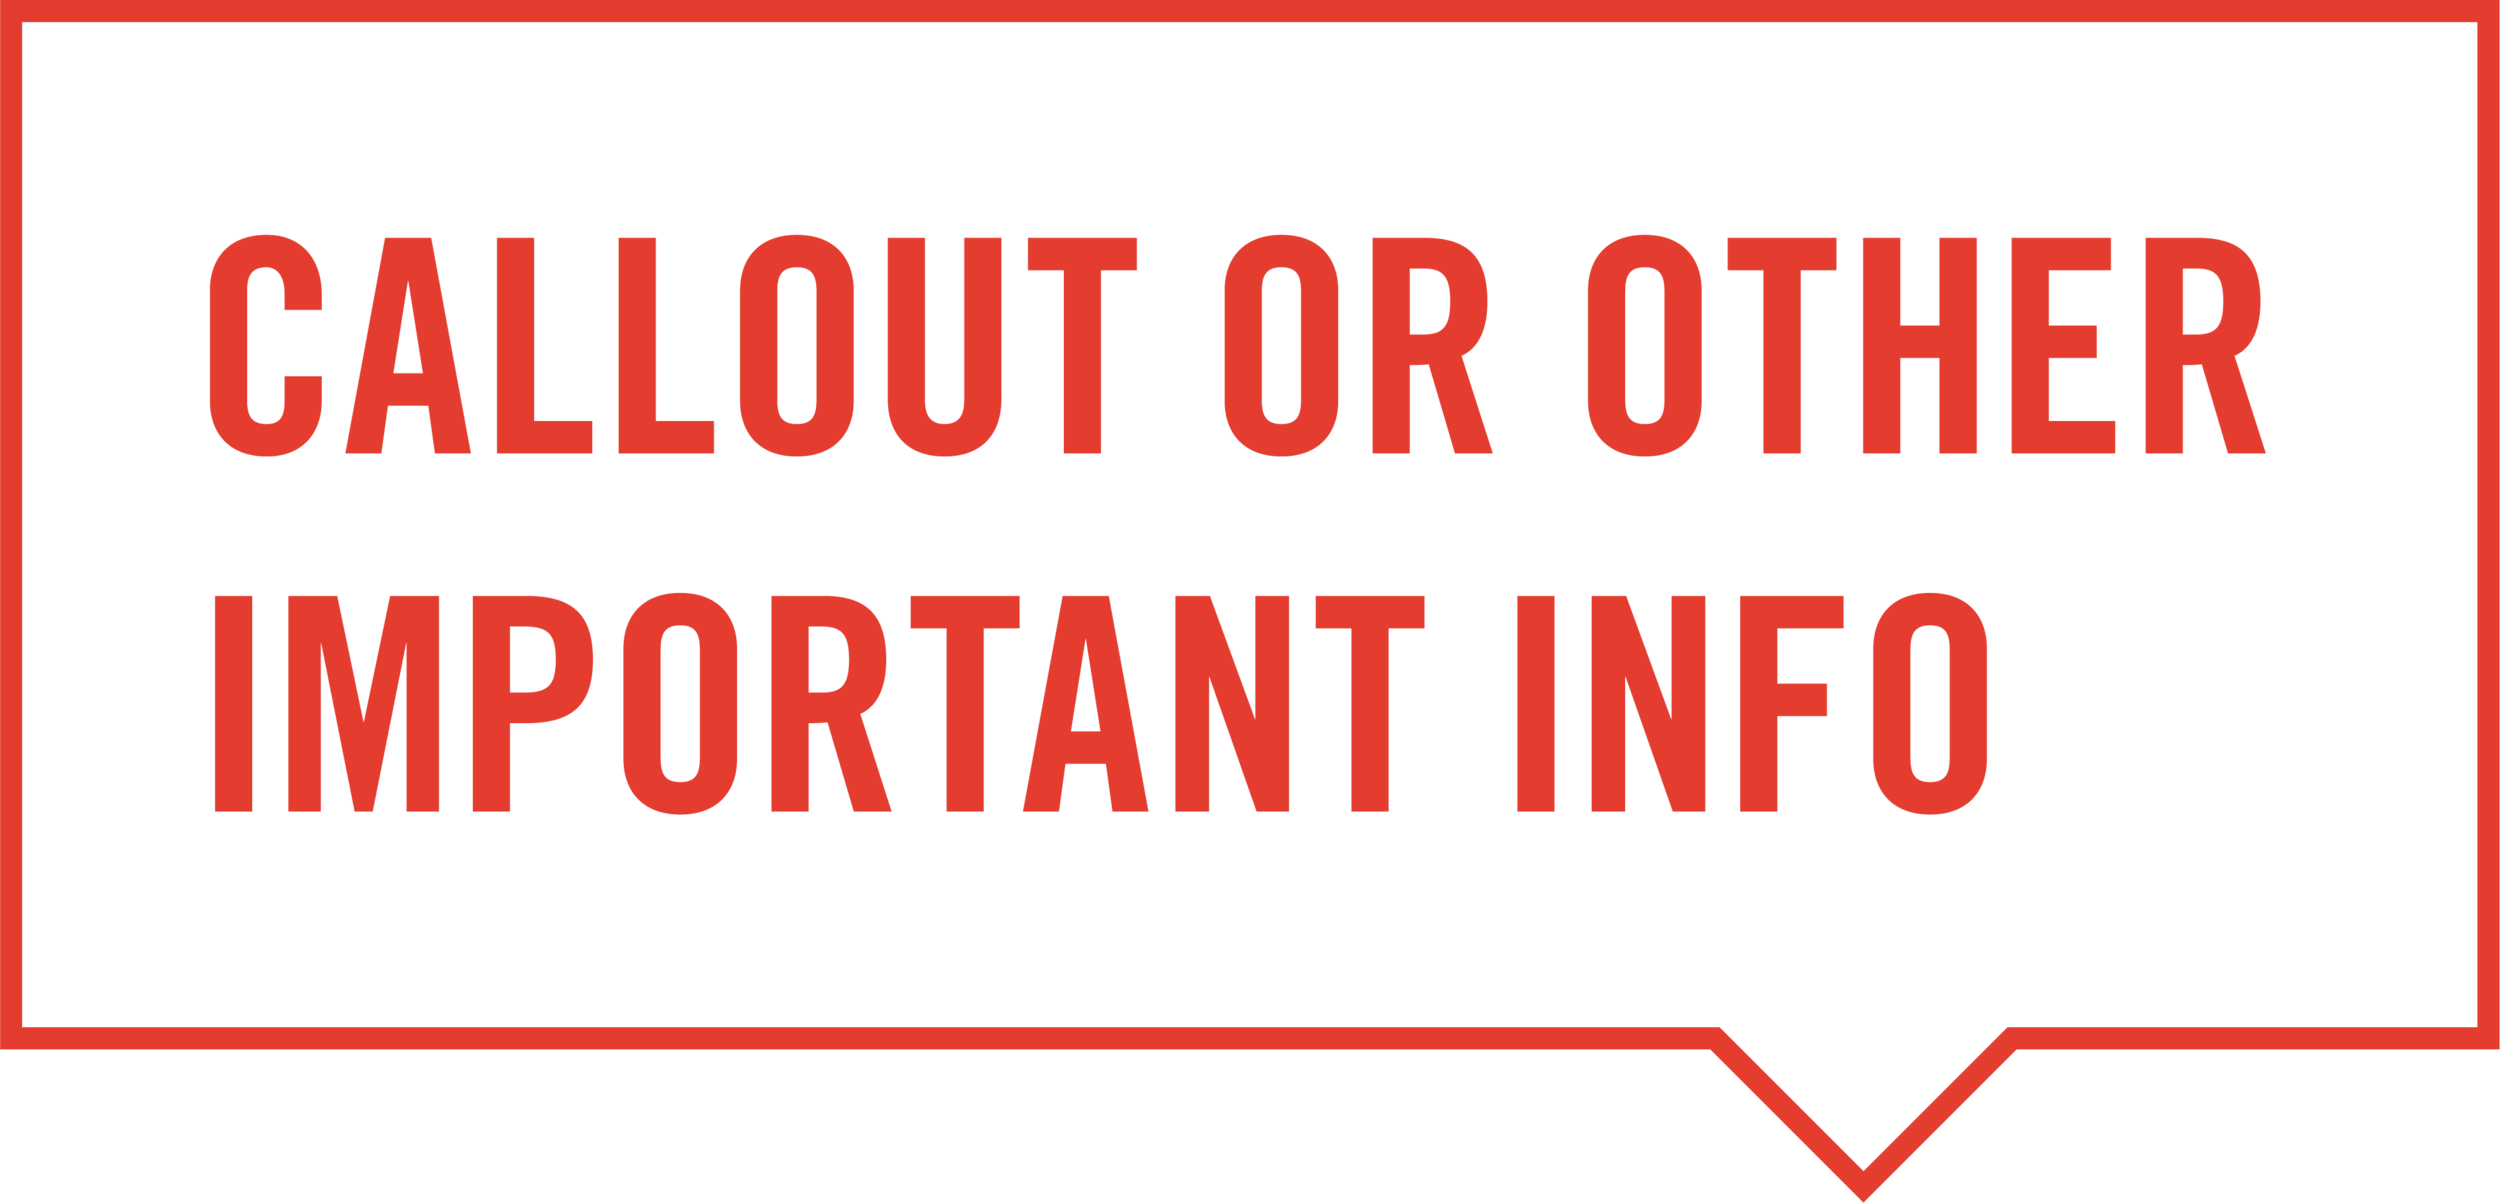 callout-outline.png